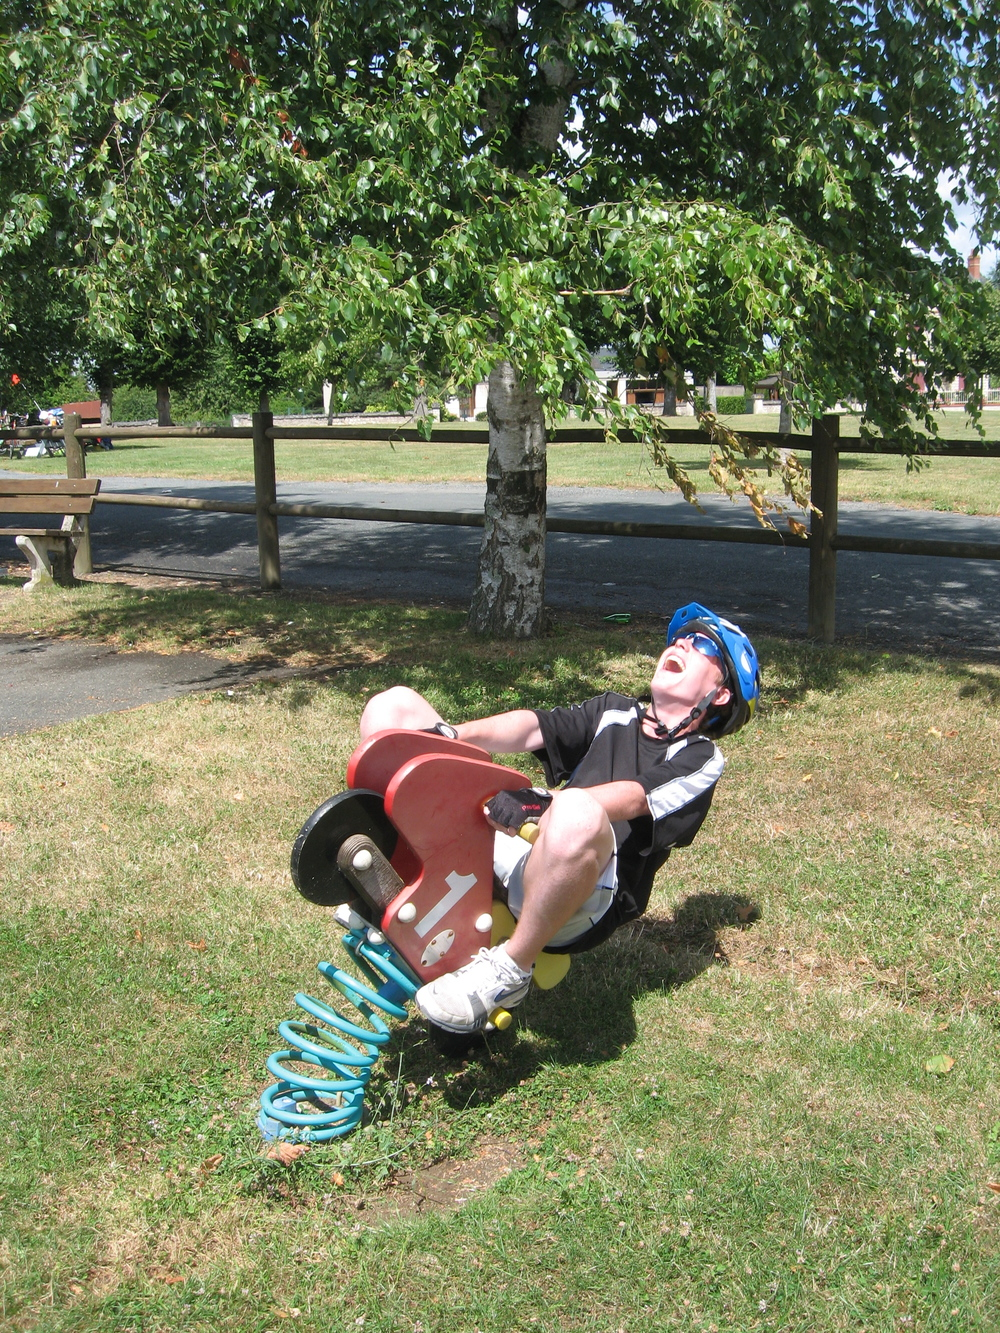 young person enjoying playground